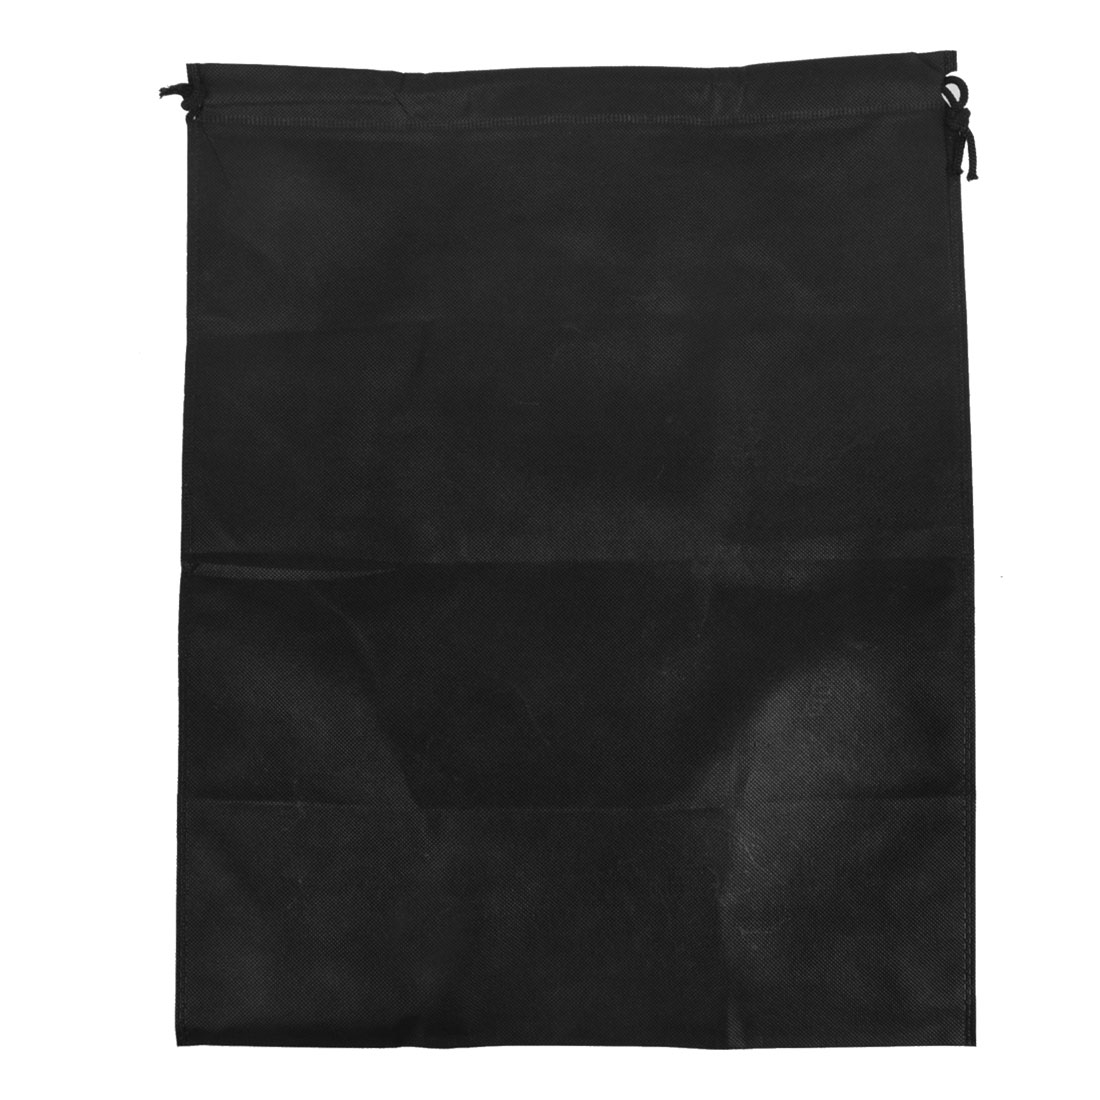 Foldable Clothes Dust Cover Storage Drawstring Bags 50 x 40cm Black